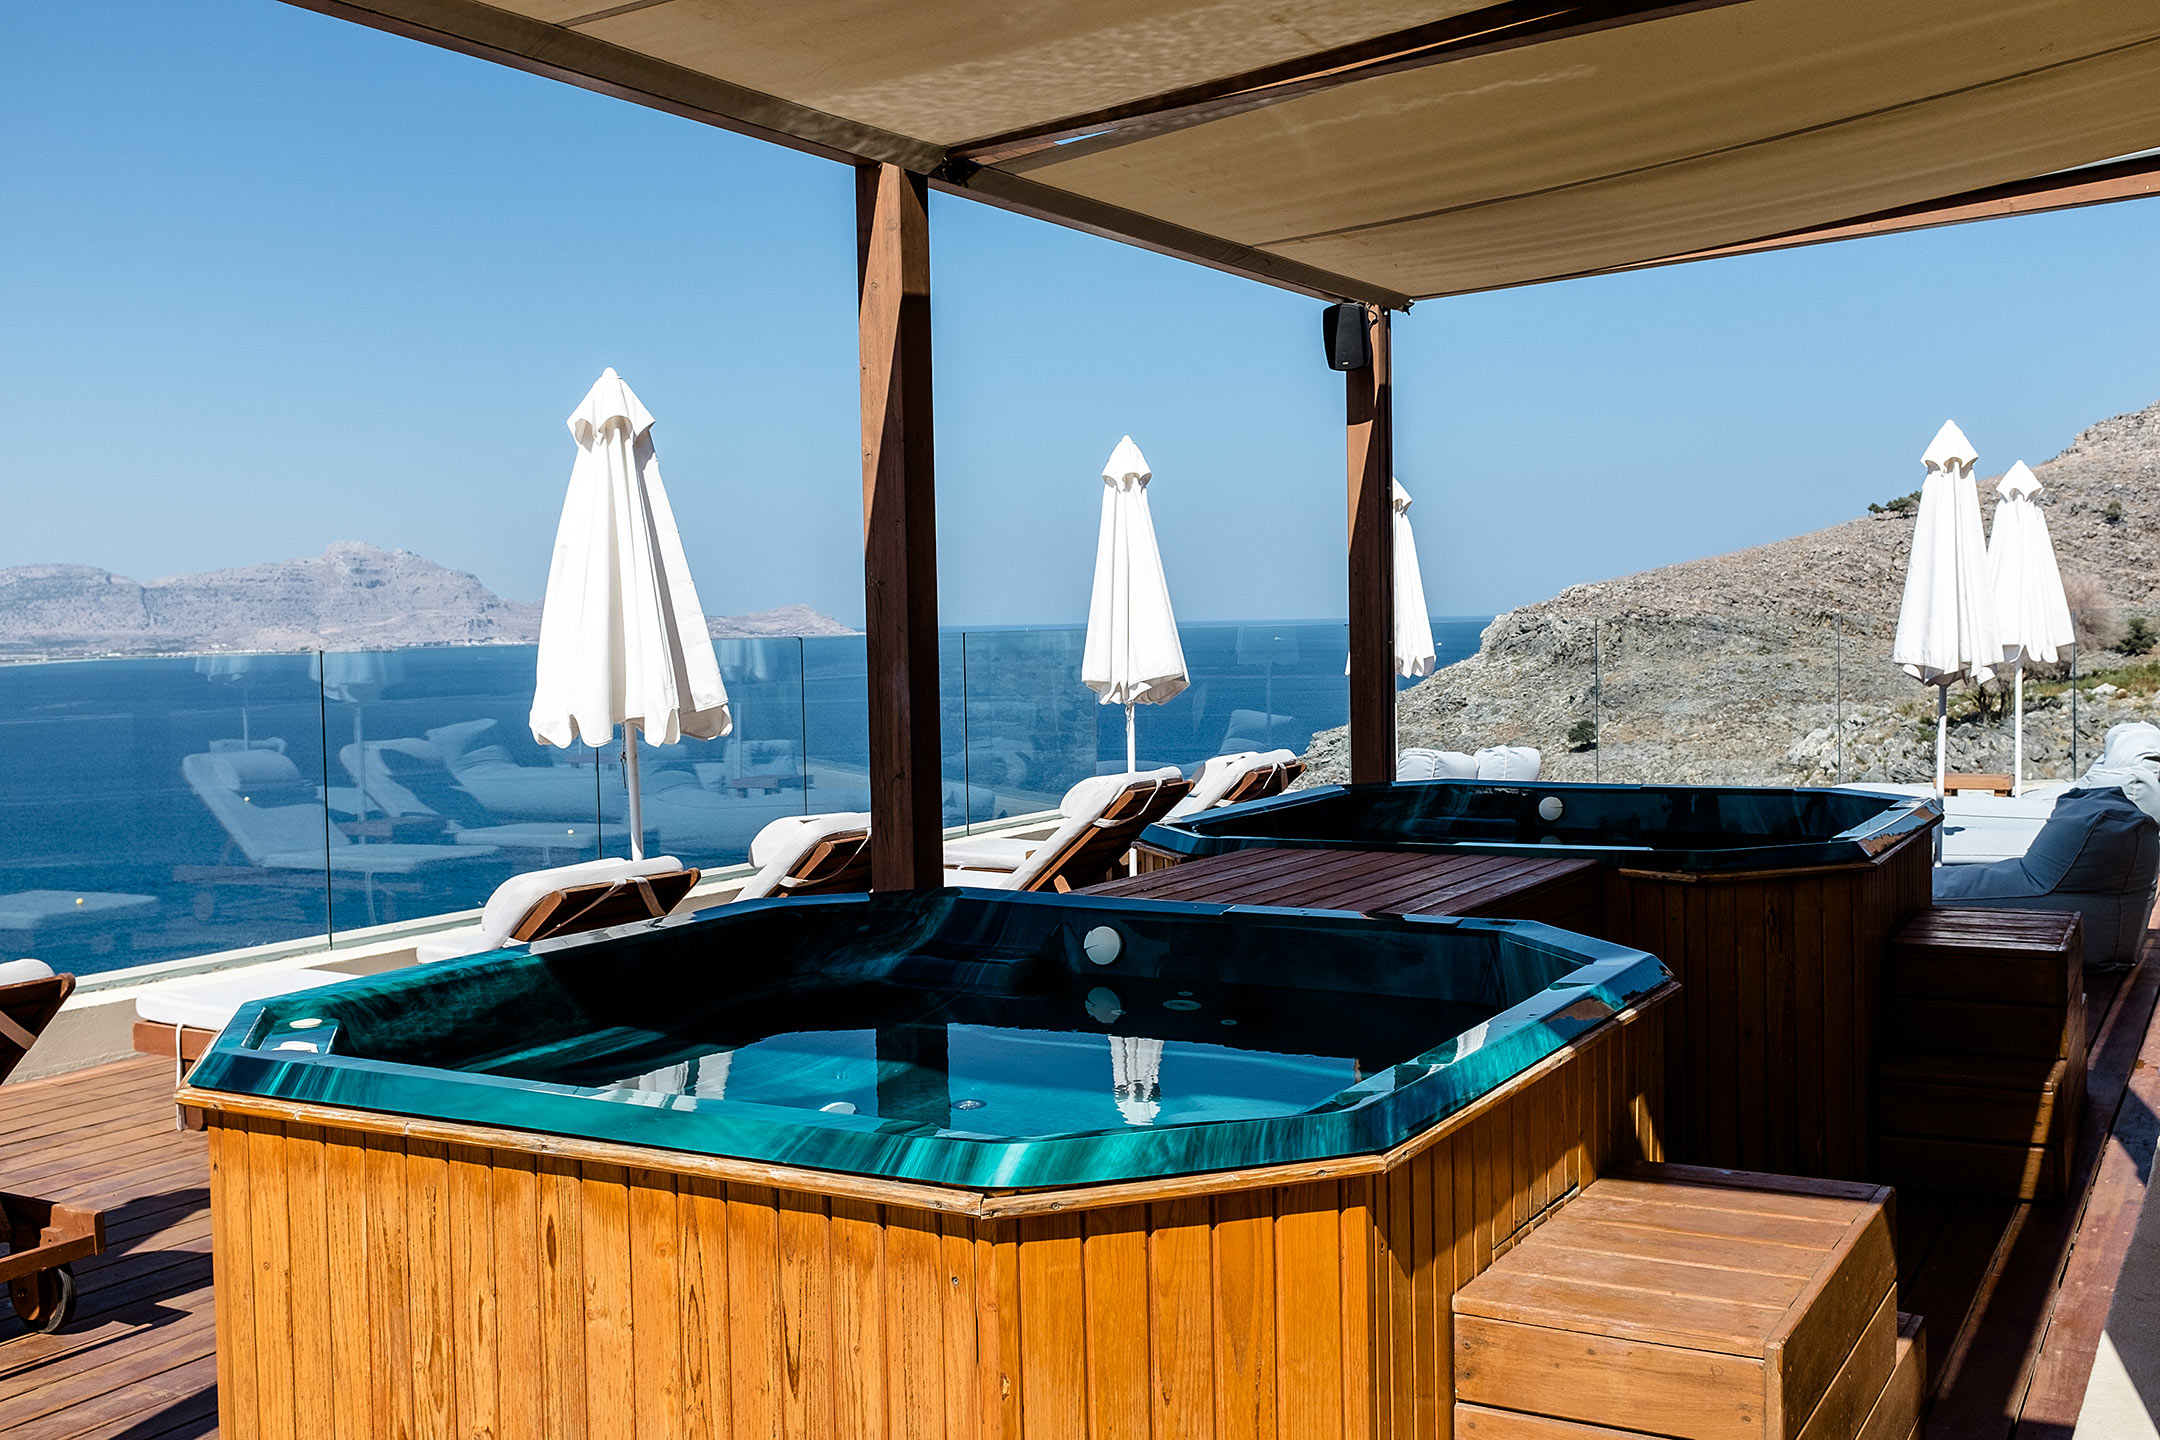 Lindos Blu Luxury Hotel Rhodos Jacuzzi Travel Blog Sunnyinga